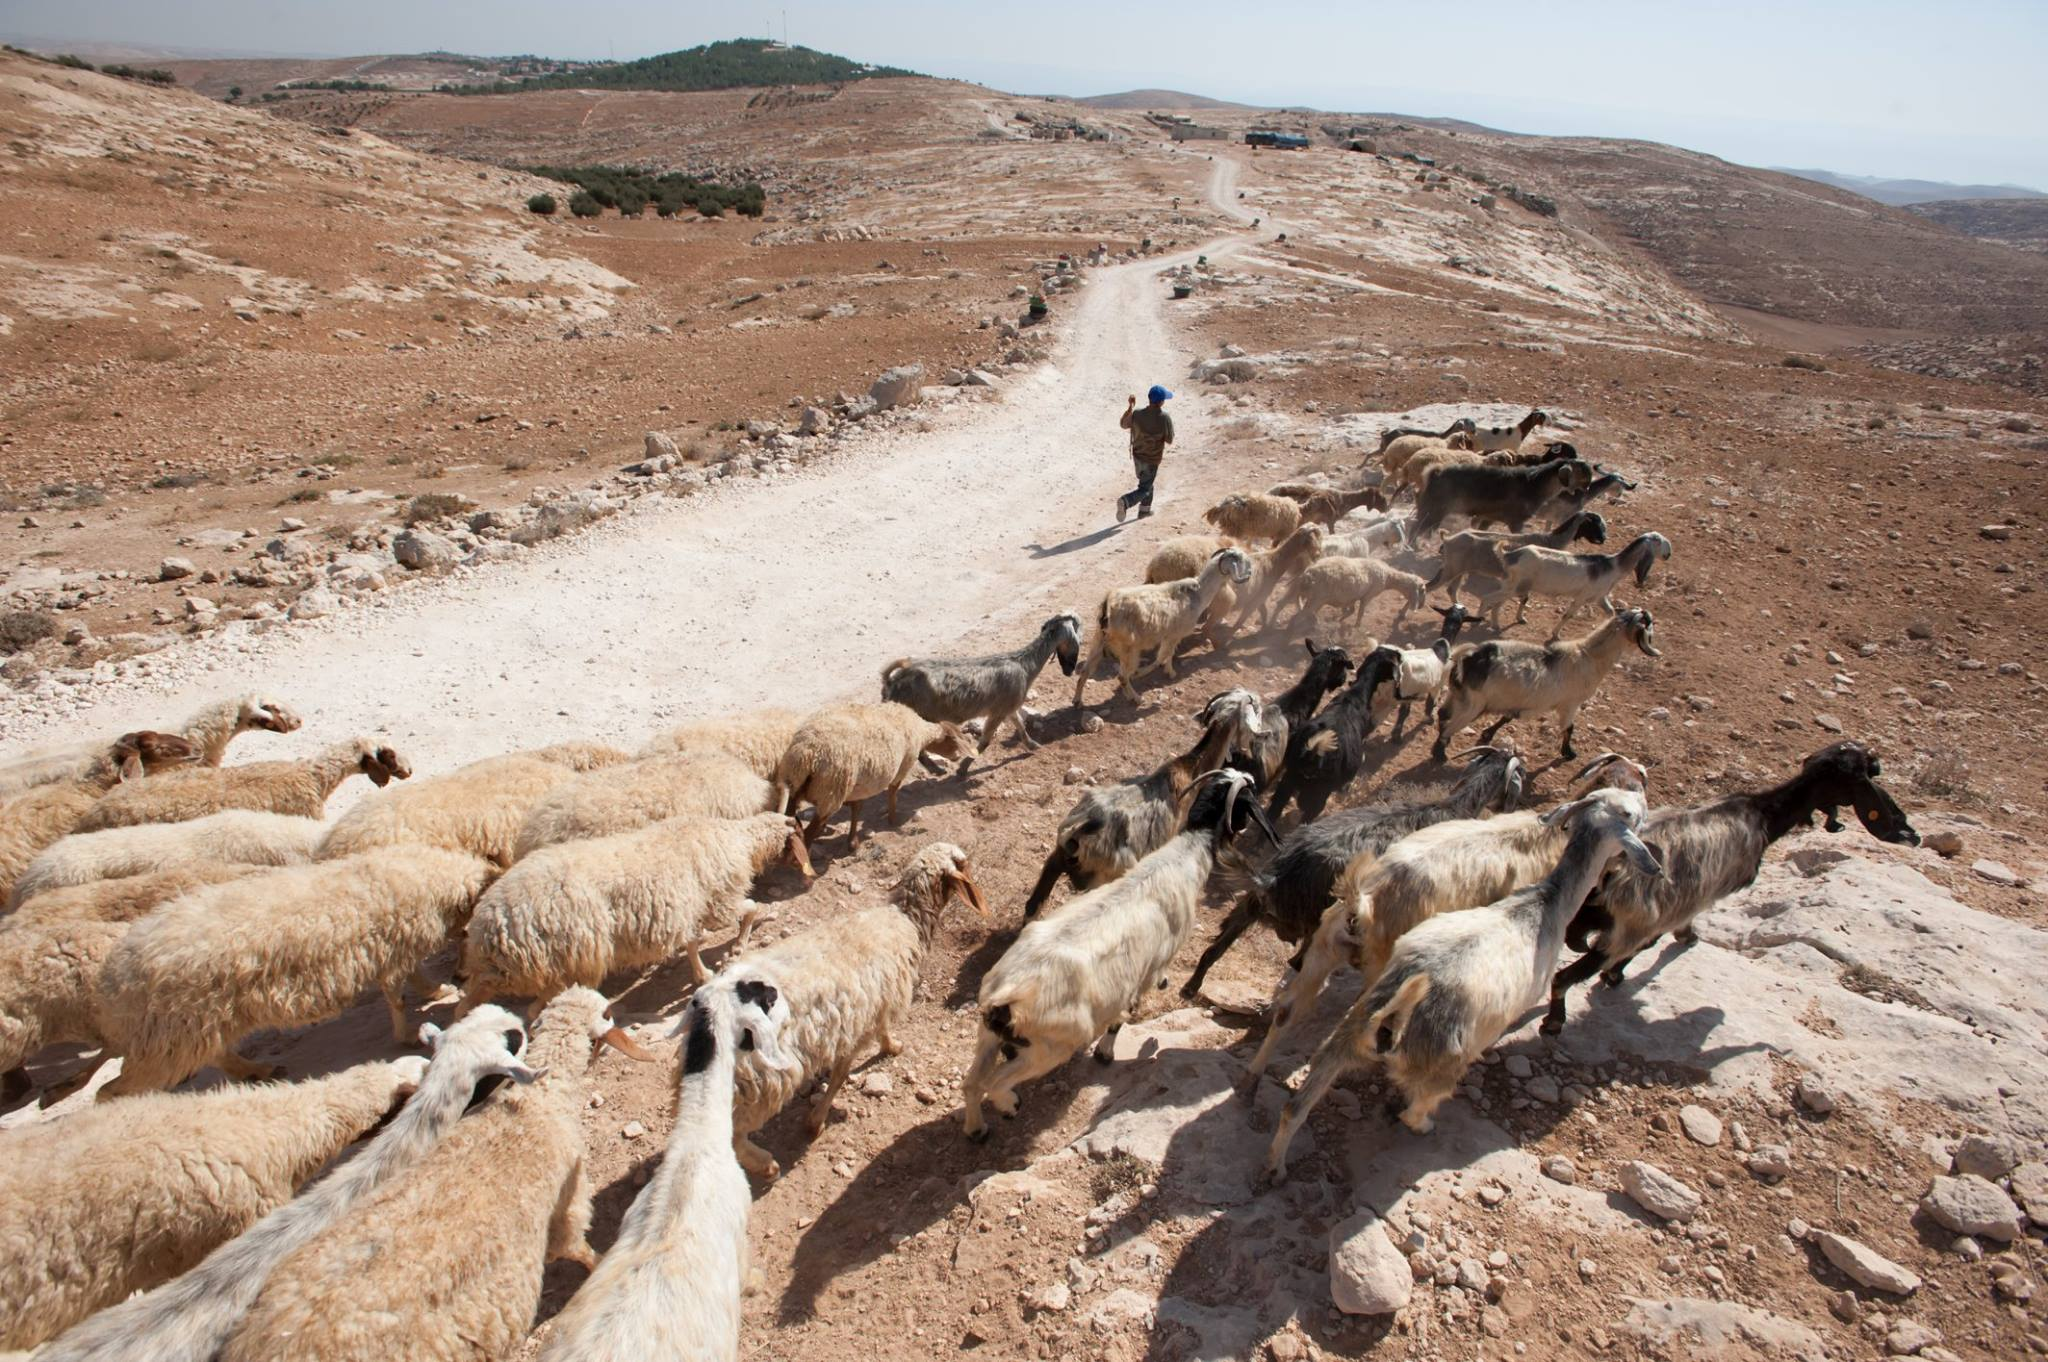 The Shepherd Society helps the marginalized in Palestine